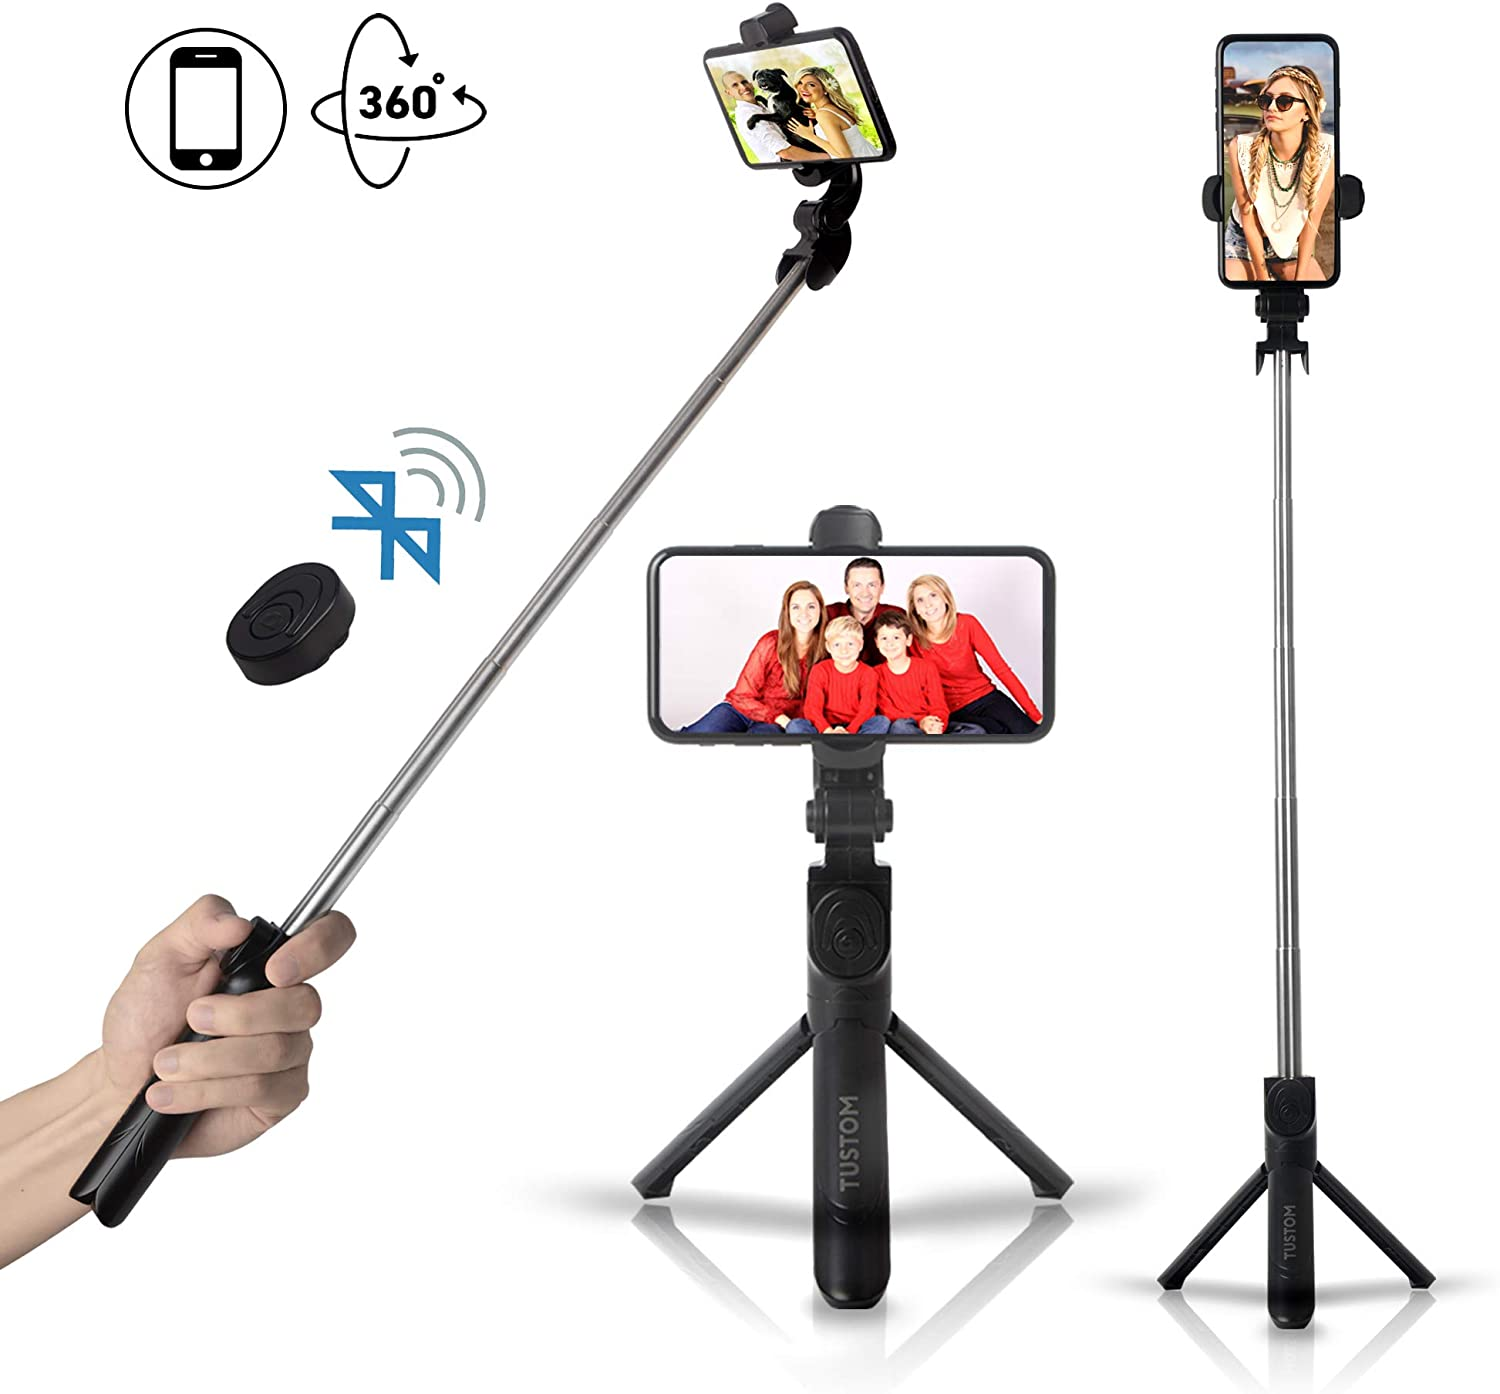 TUSTOM Tripod for Phone and Camera – Selfie Stick Bluetooth Compatible with iPhone and Android – 360-Degree Rotation Phone Stand – Wireless Remote – Ideal for Vloggers, Live Streaming (Black)